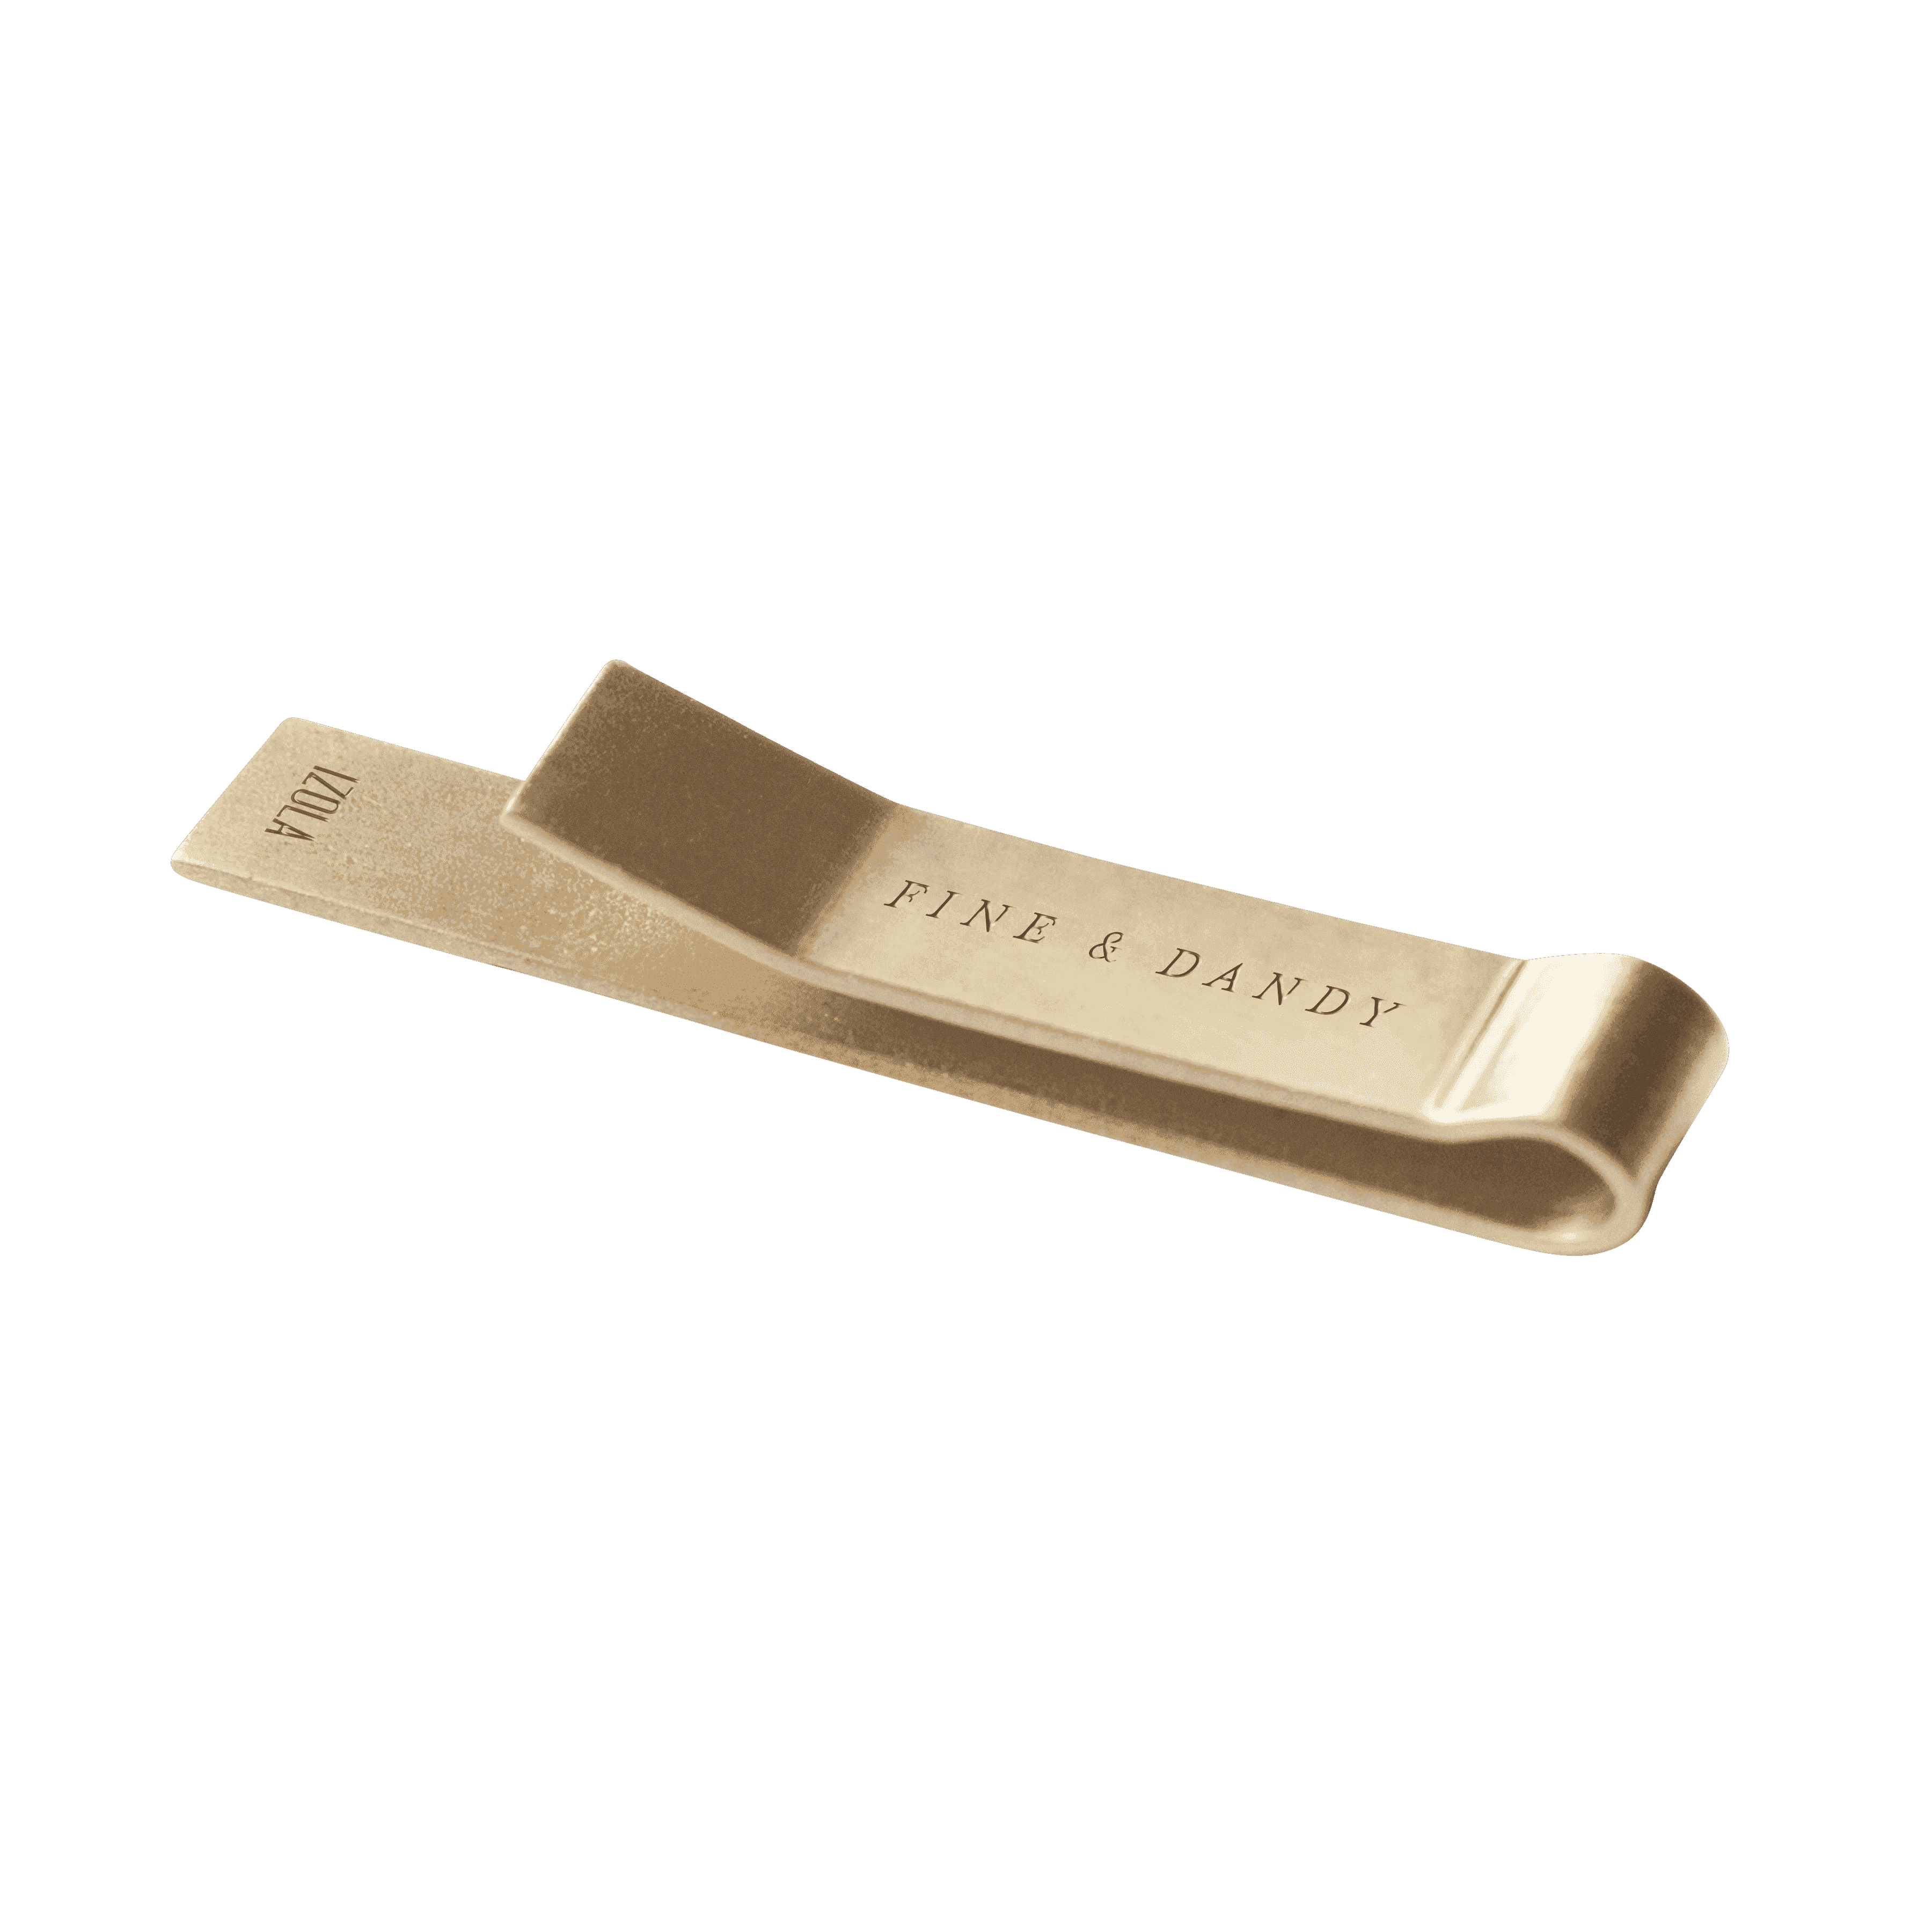 Brass clip tie. Where to place a